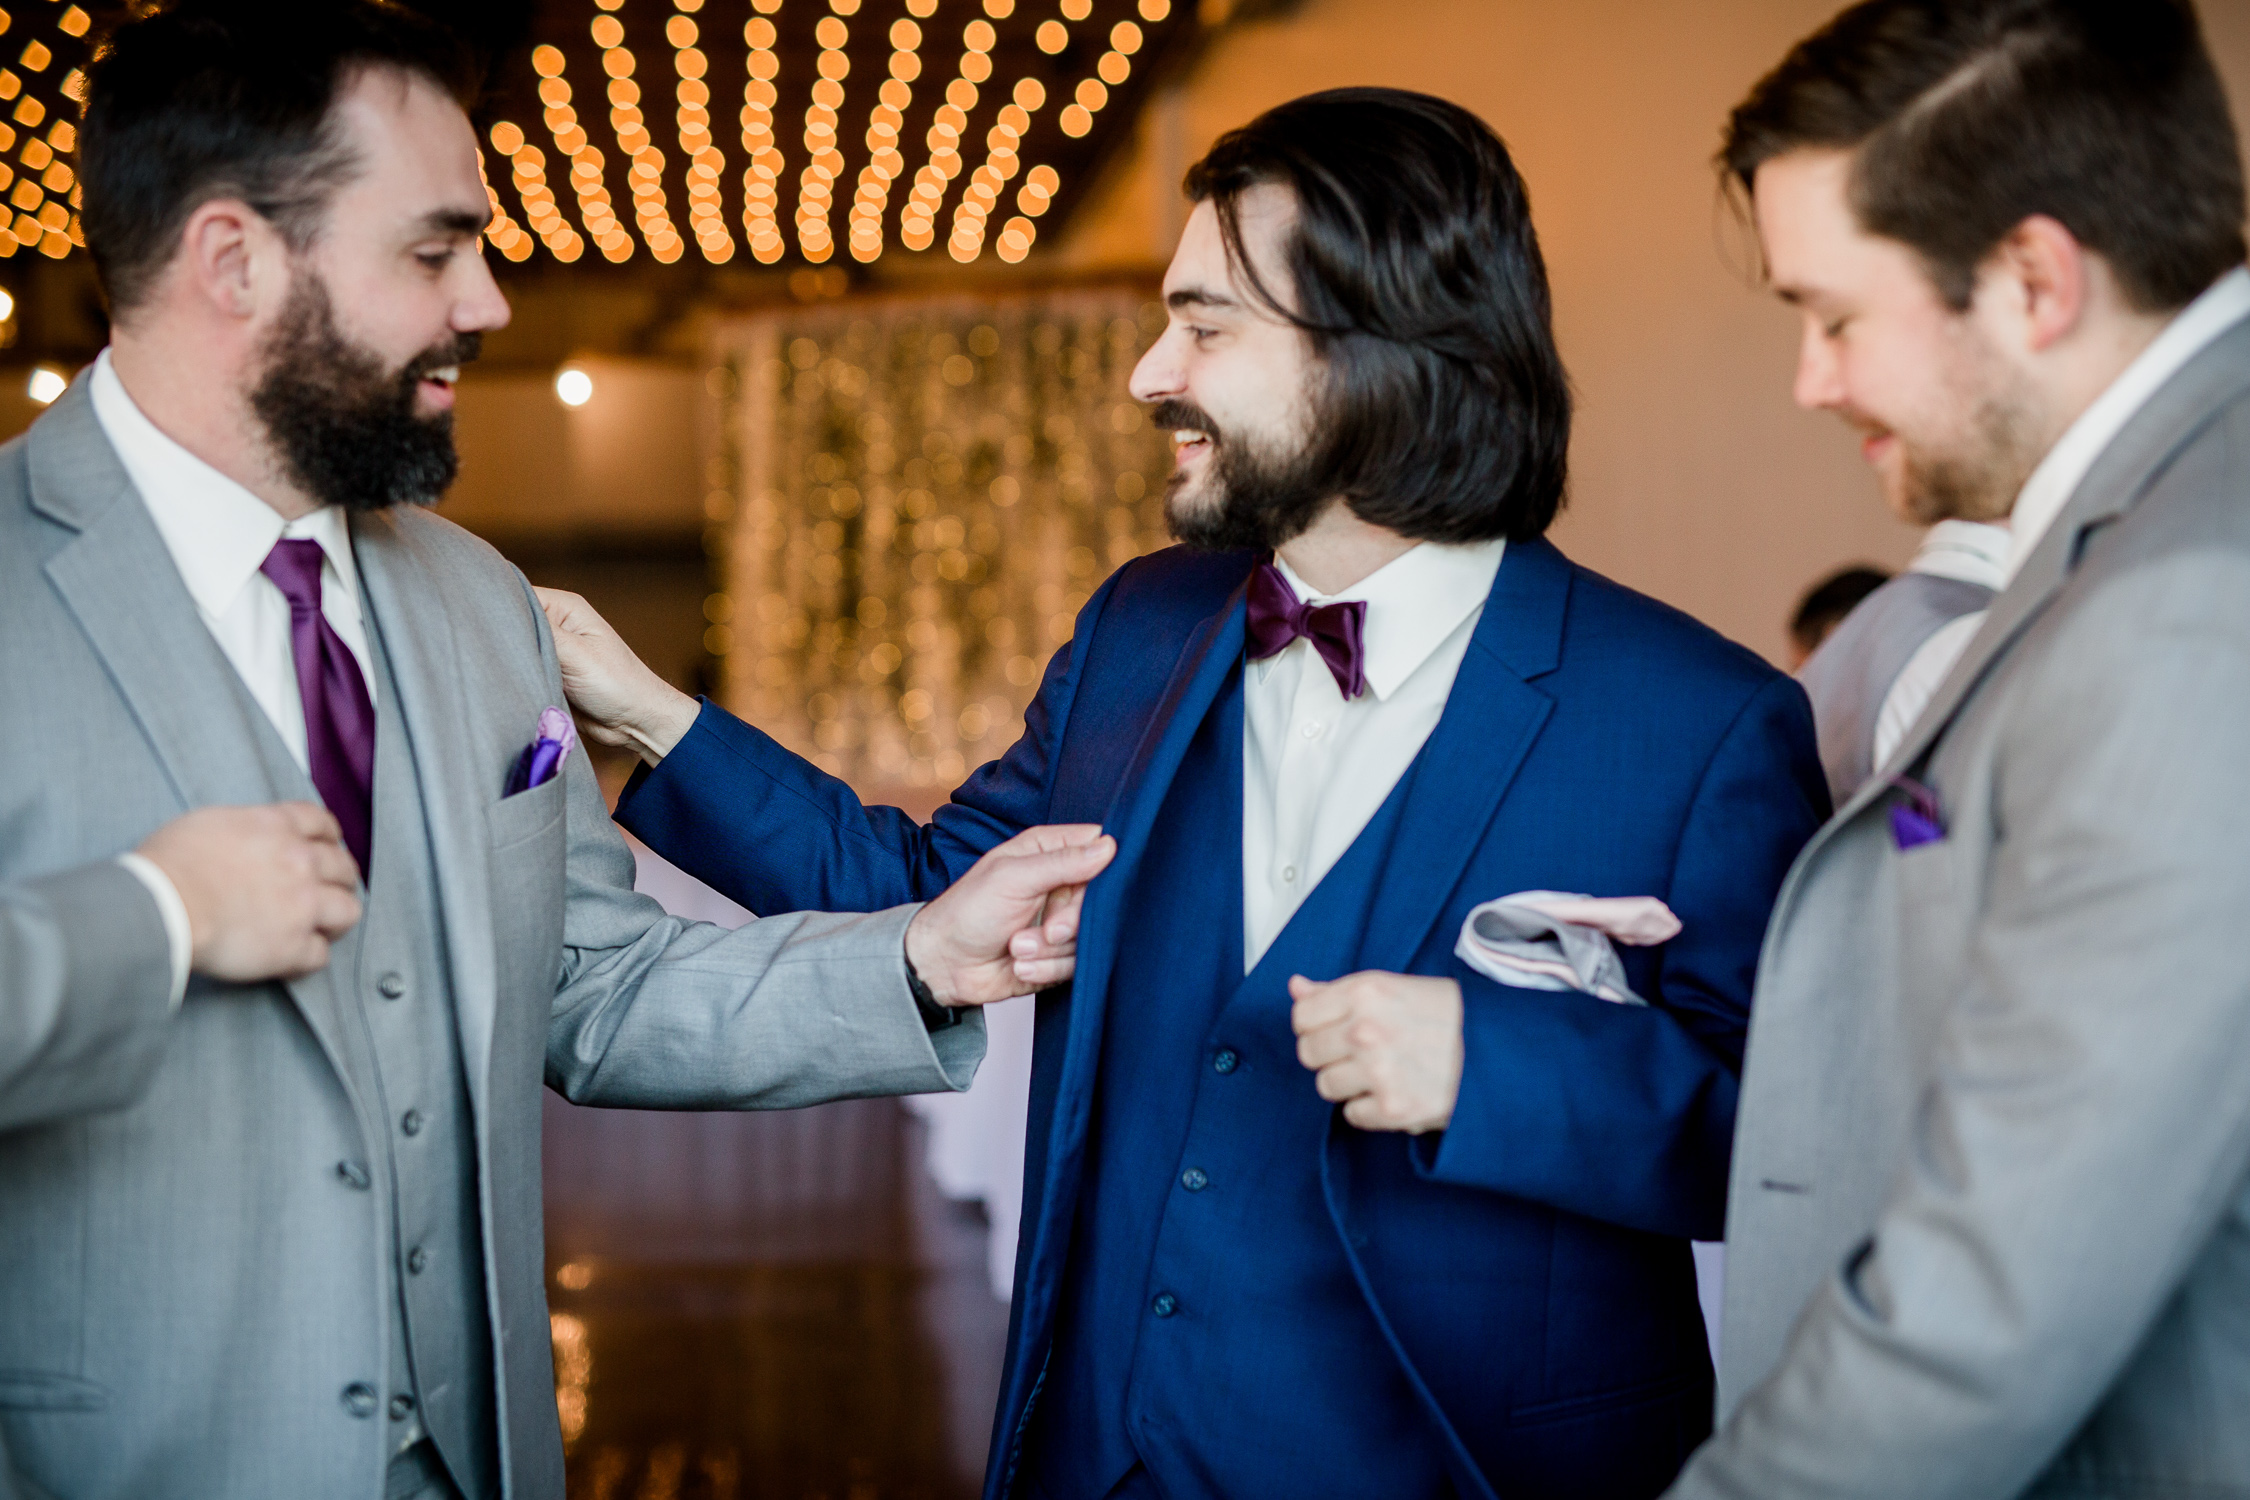 Downtown Knoxville Wedding Venue // Central Avenue Reception // Groomsmen Getting Ready